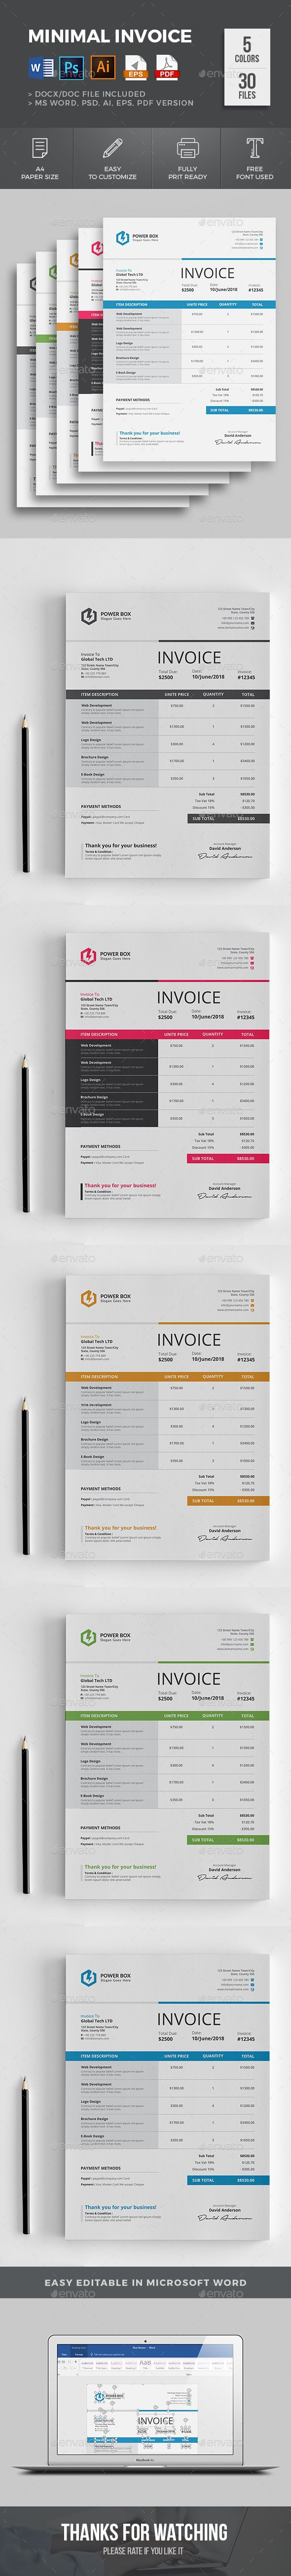 #Invoice - #Proposals & Invoices #Stationery Download here: https://graphicriver.net/item/invoice/18747561?ref=alena994